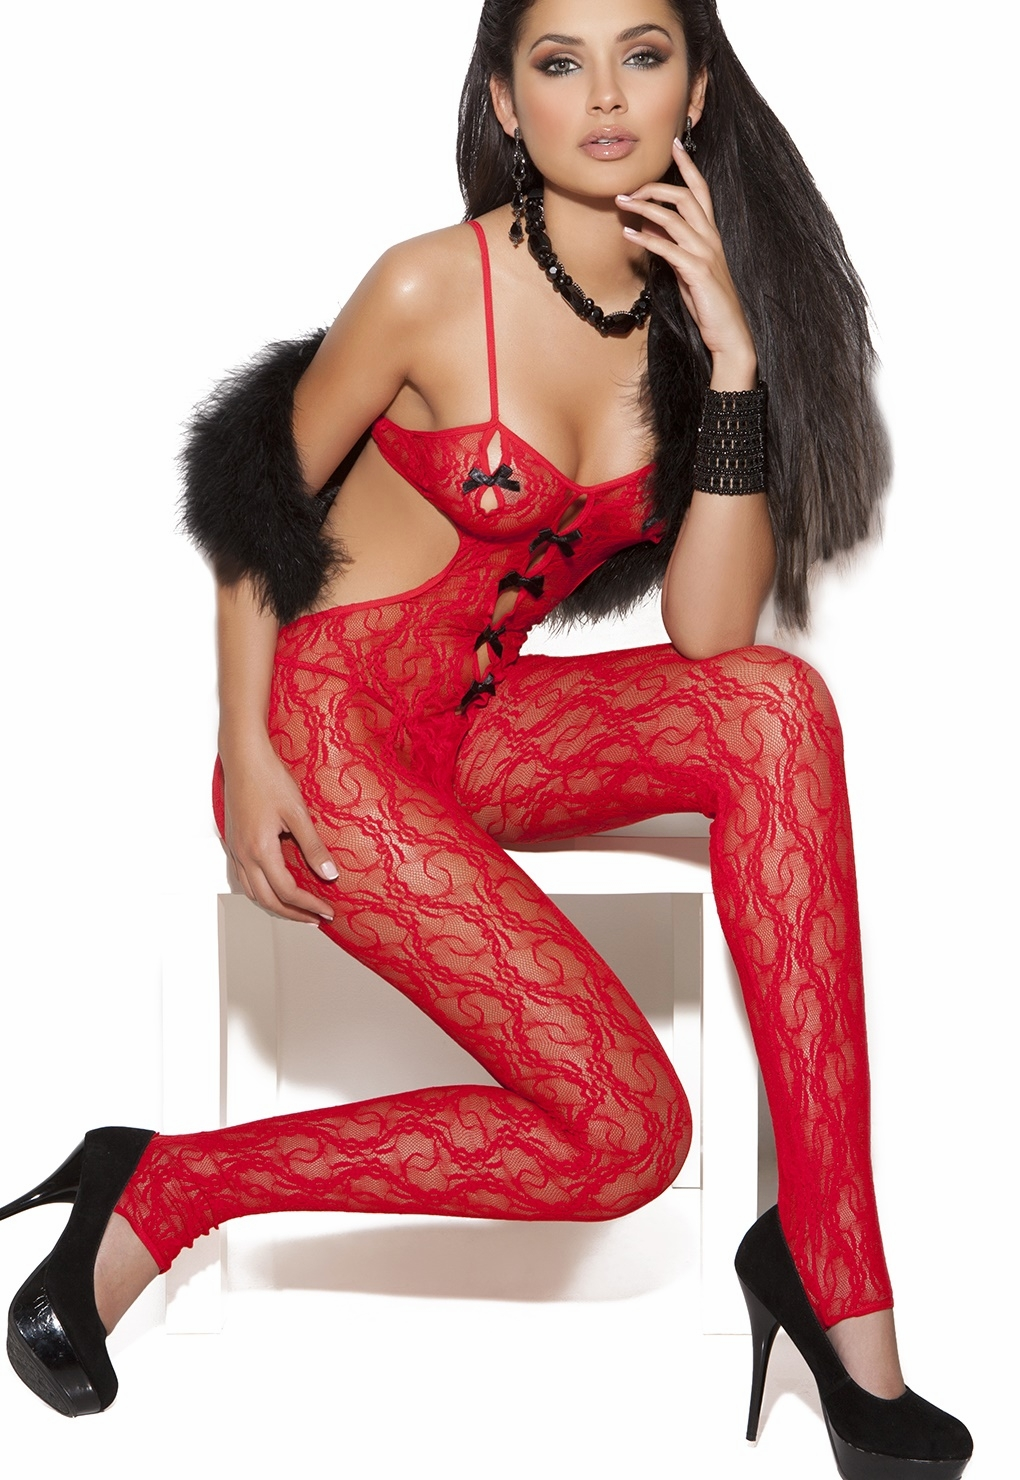 8703 Sexy Red Lace Bodystocking with Satin Bow OS by Elegant Moments